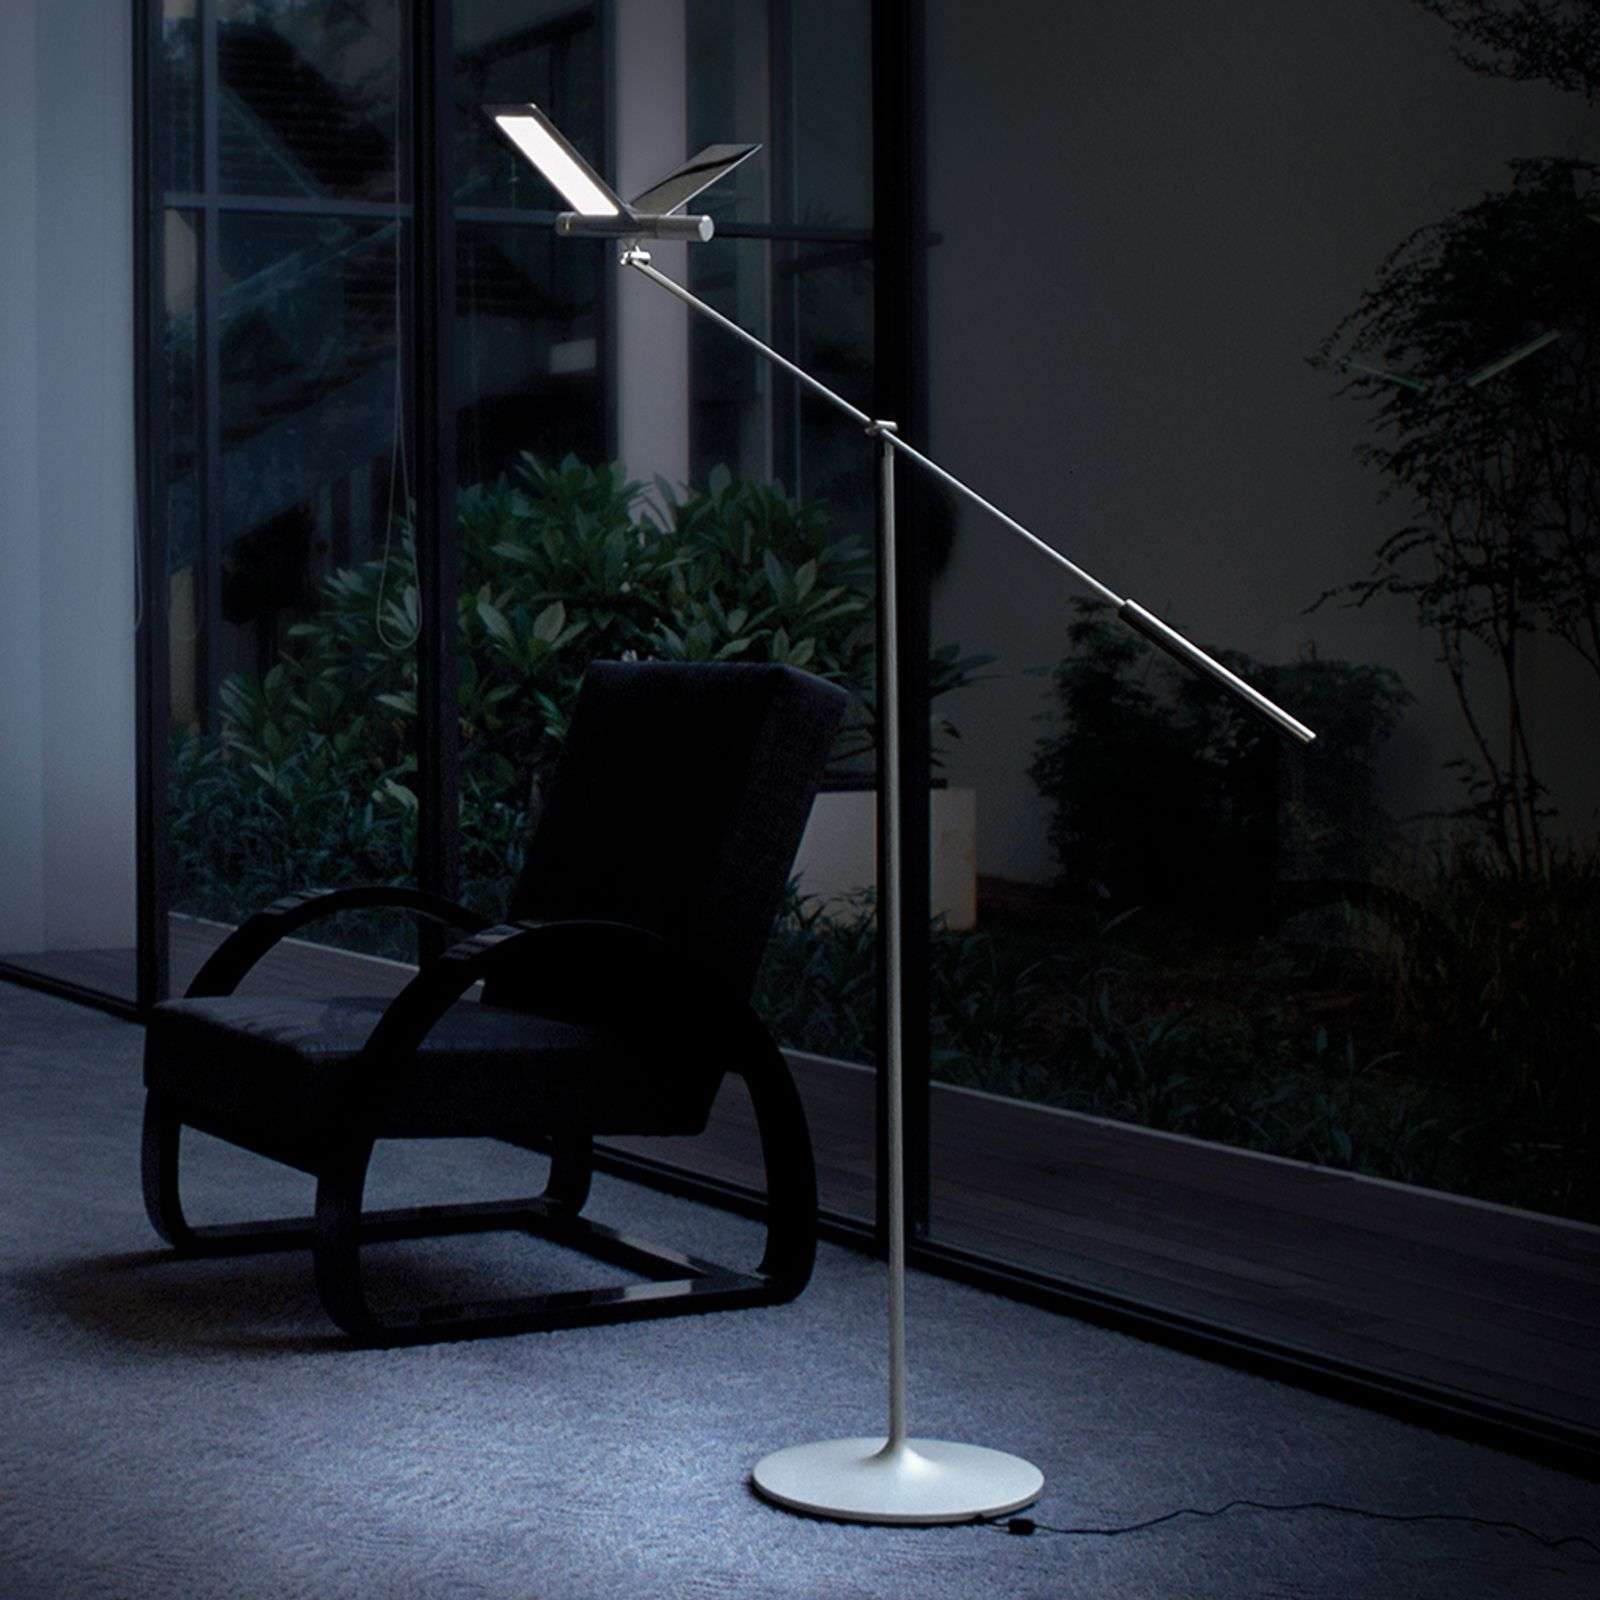 Lampe de table LED Seagull au design insolite